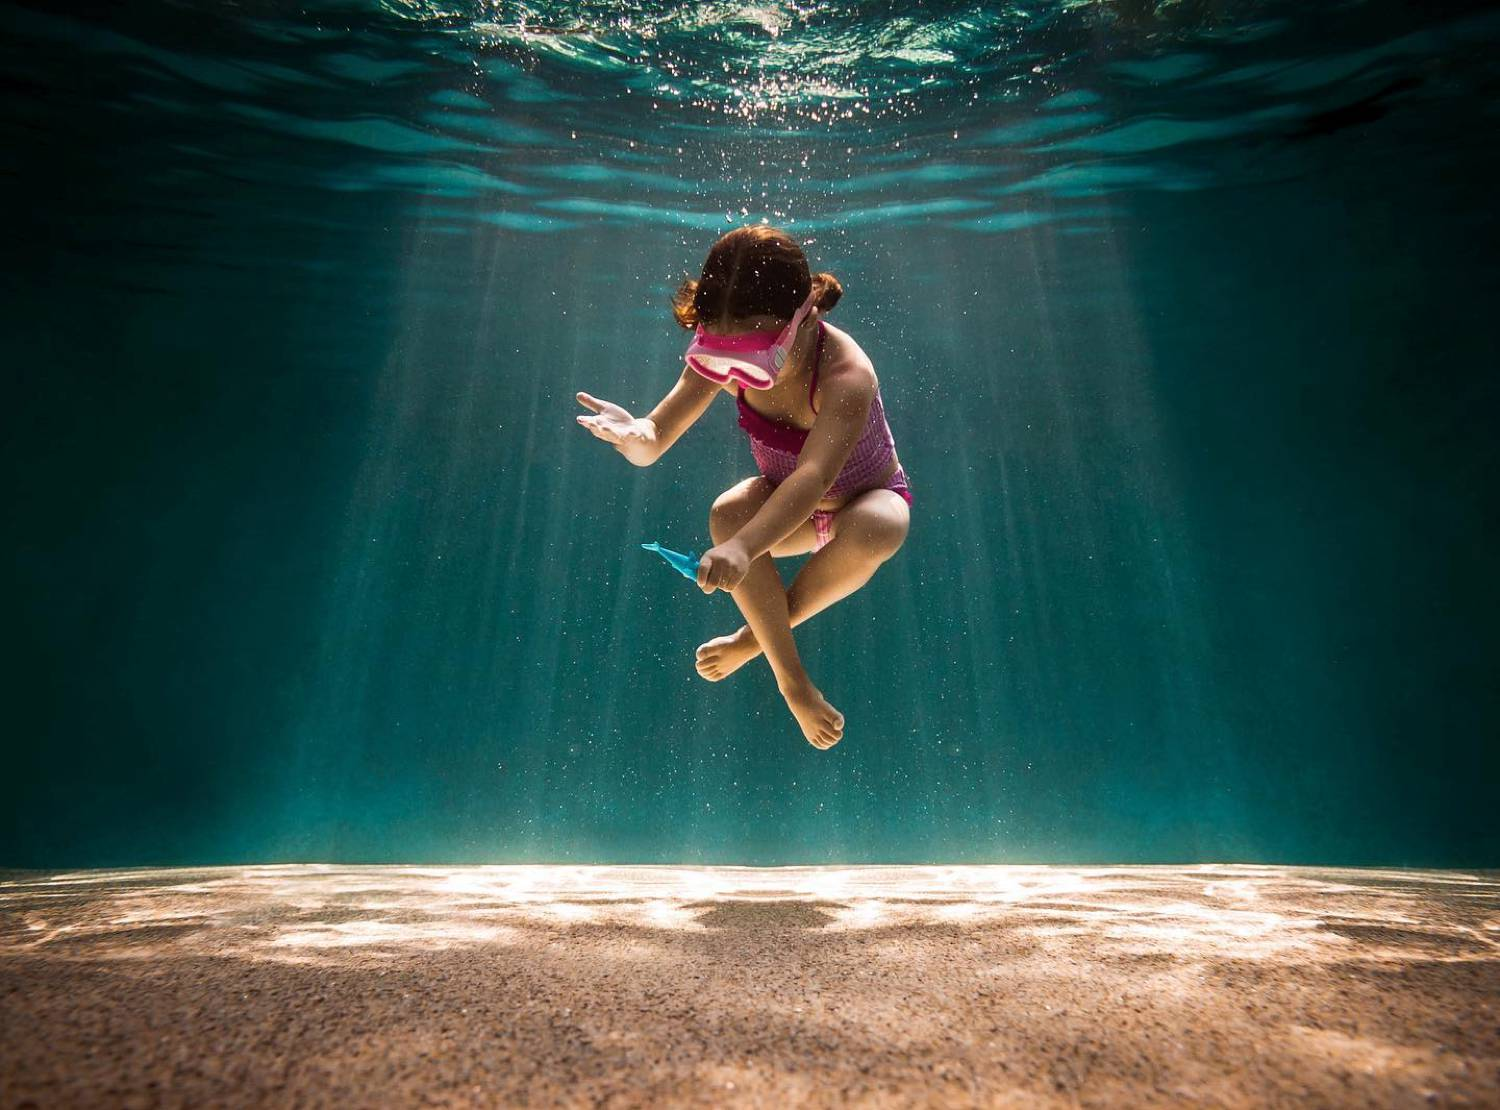 underwater photo of a child playing